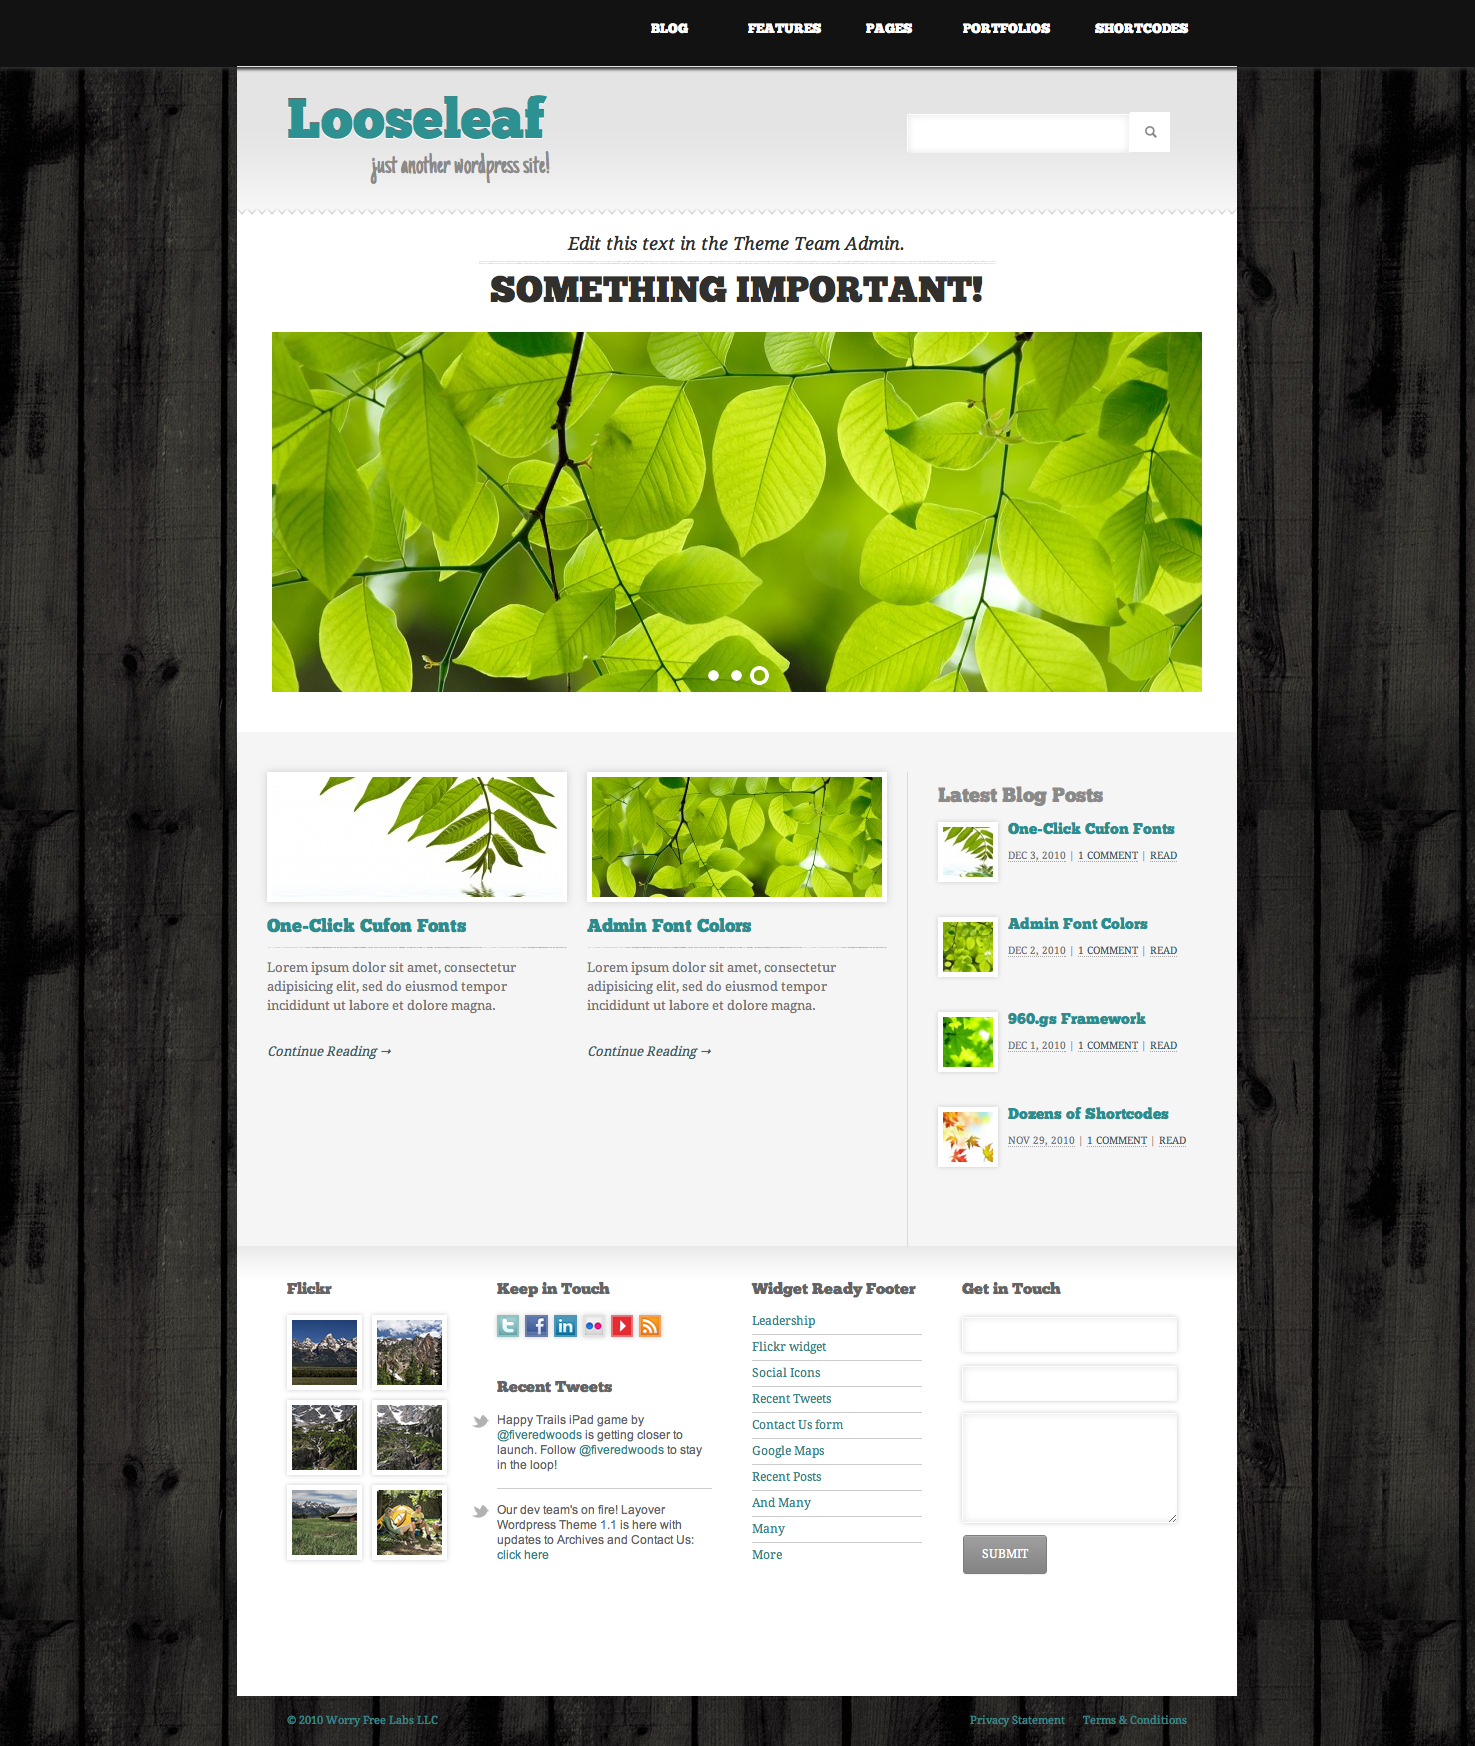 Looseleaf Wordpress Theme